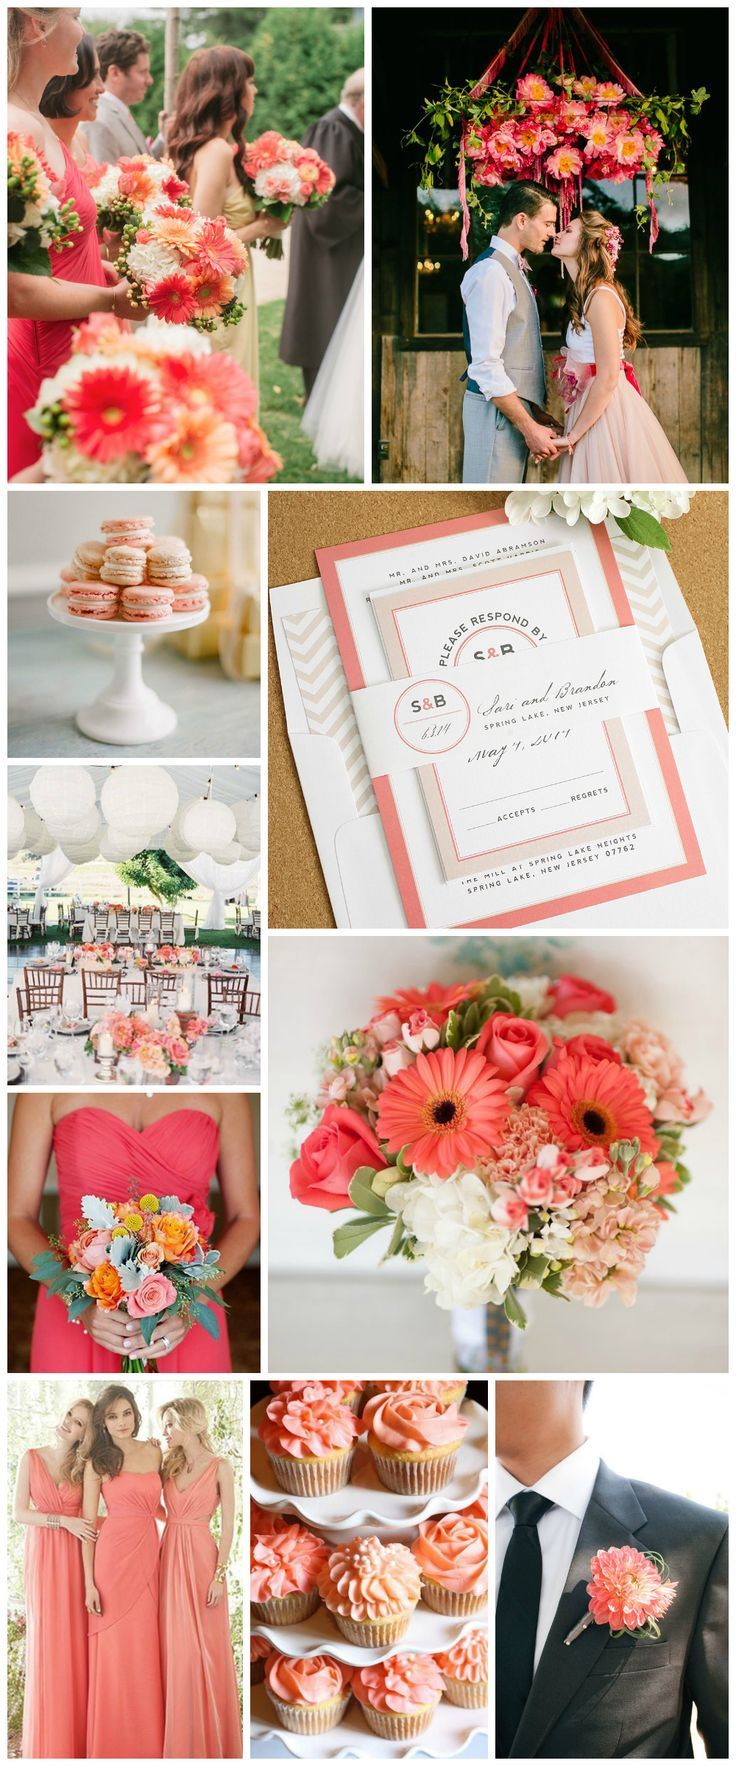 Wedding Inspiration in Coral, Blush, and Peach - Modern Circle Logo Wedding Invitations - Coral Bridesmaids Dresses, Peach Bouquet, Cupcakes, Circle Monogram, Pink Wedding Dress, Paper Lanterns